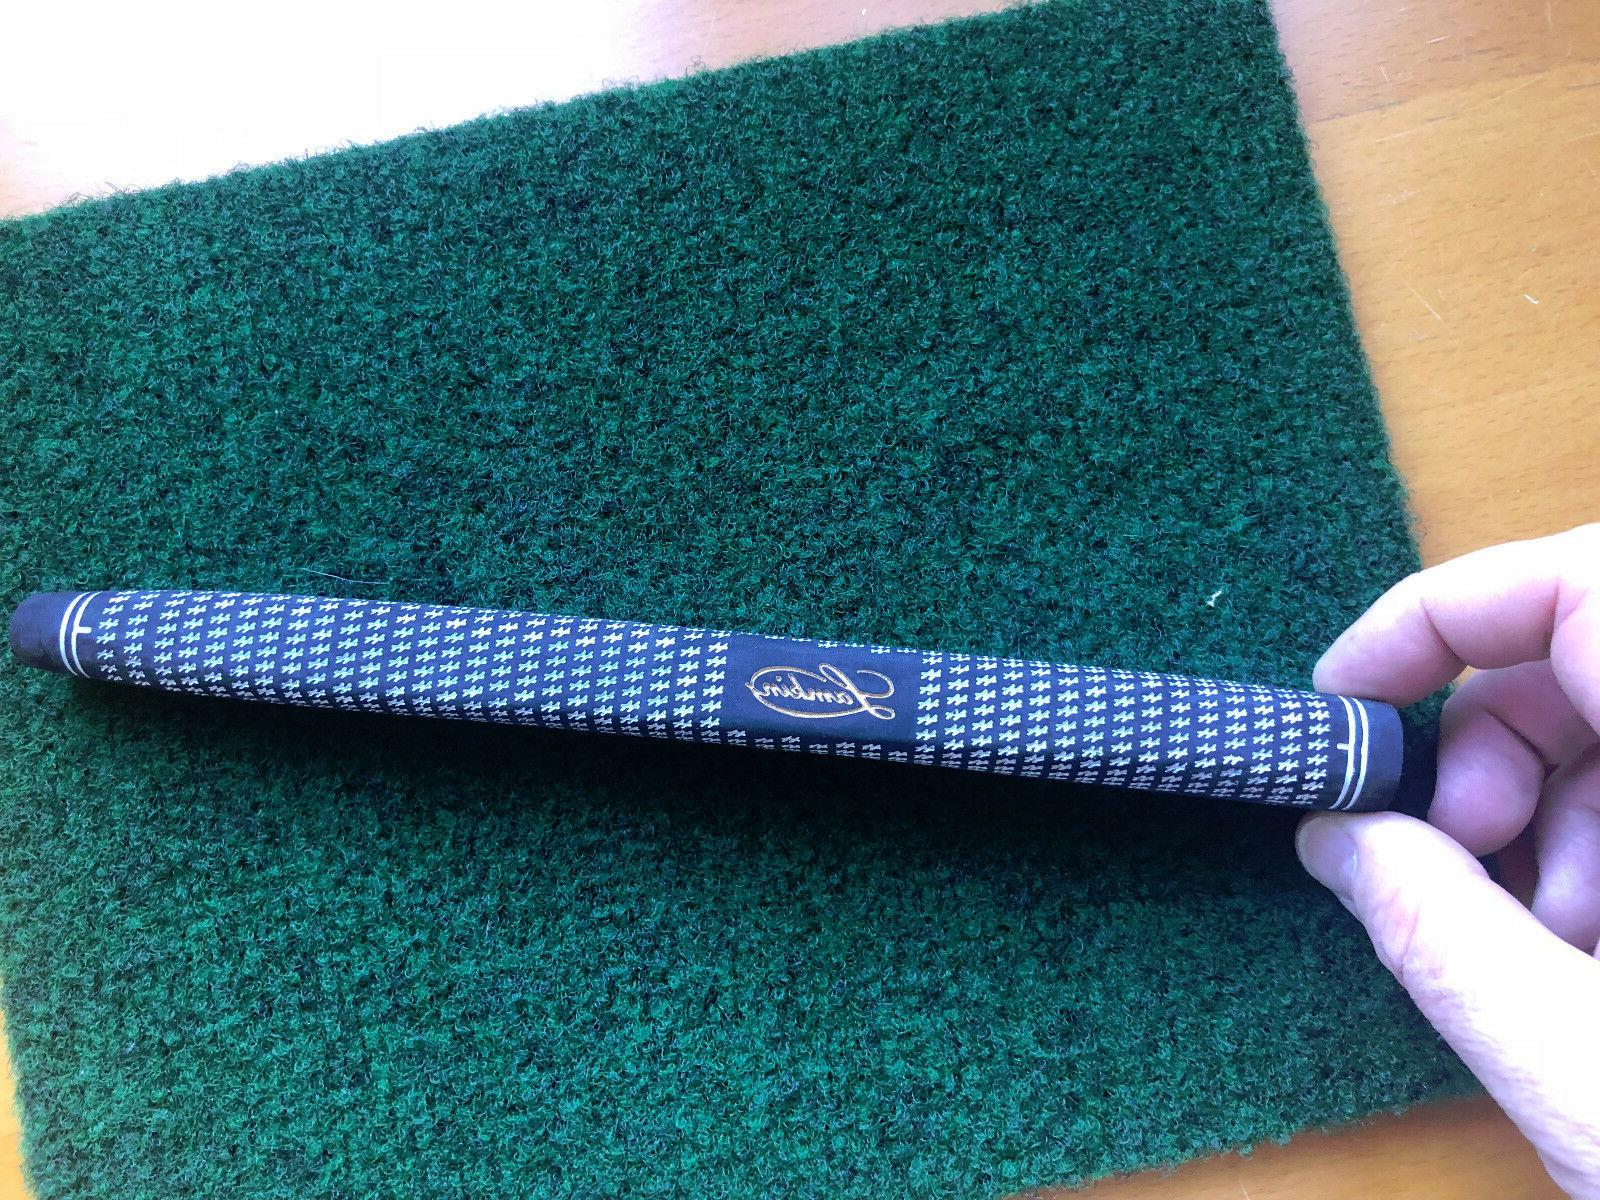 NEW! Single Paddle Putter Grips - Black/White